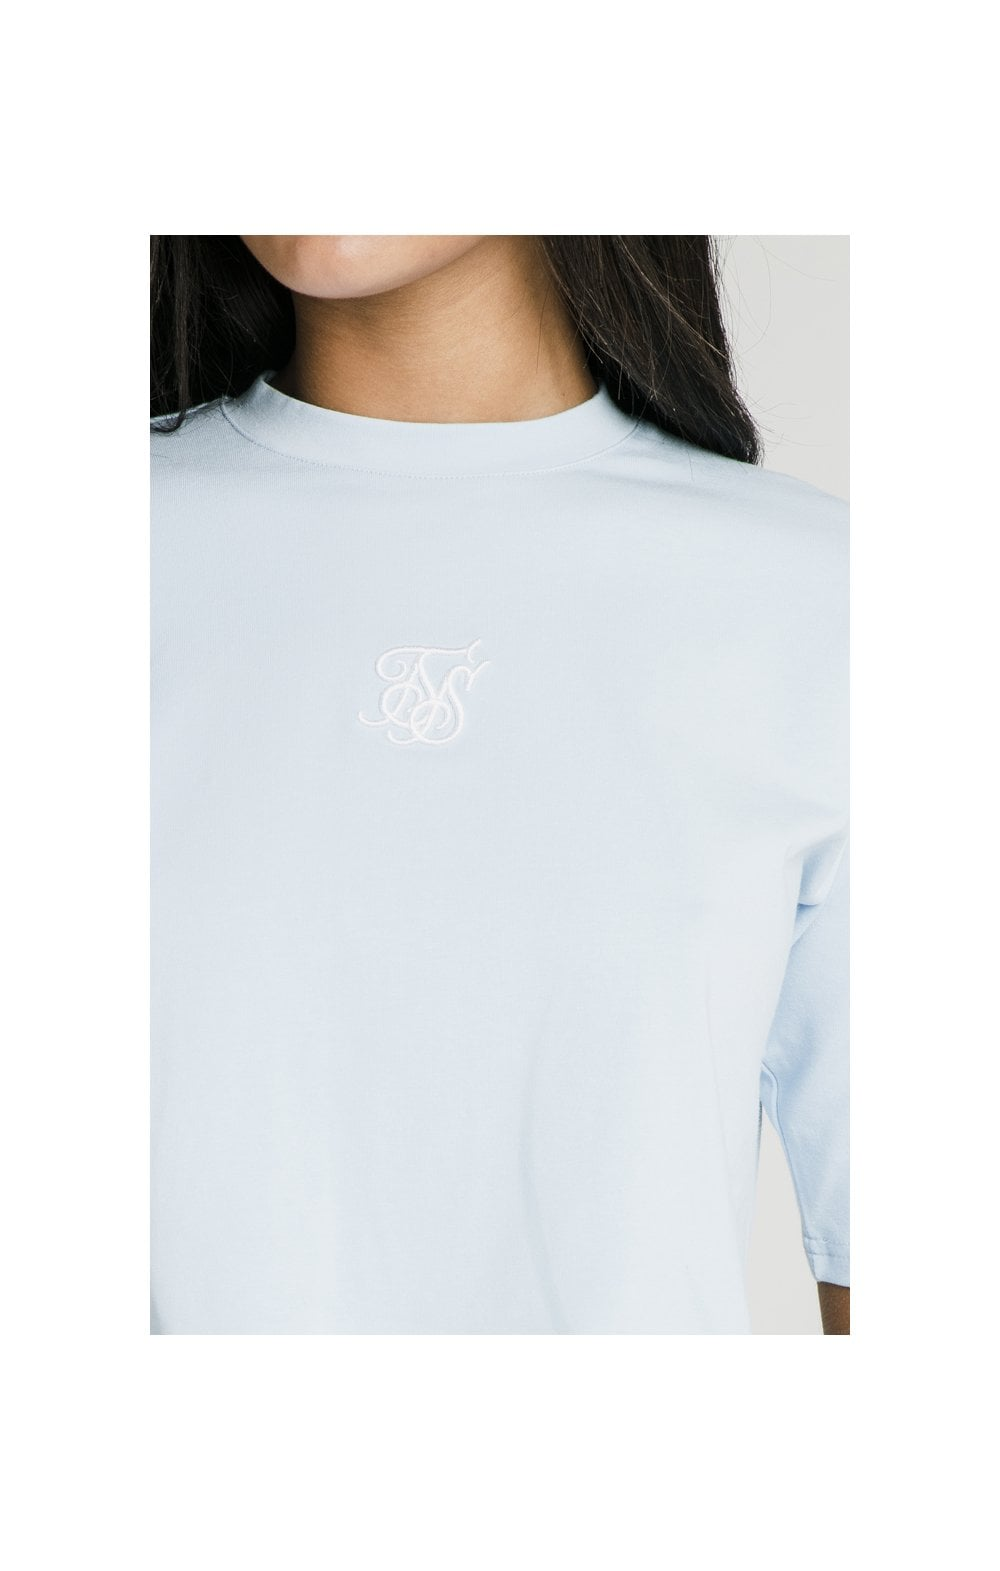 SikSilk Oversize Crop Tee - Light Blue (1)